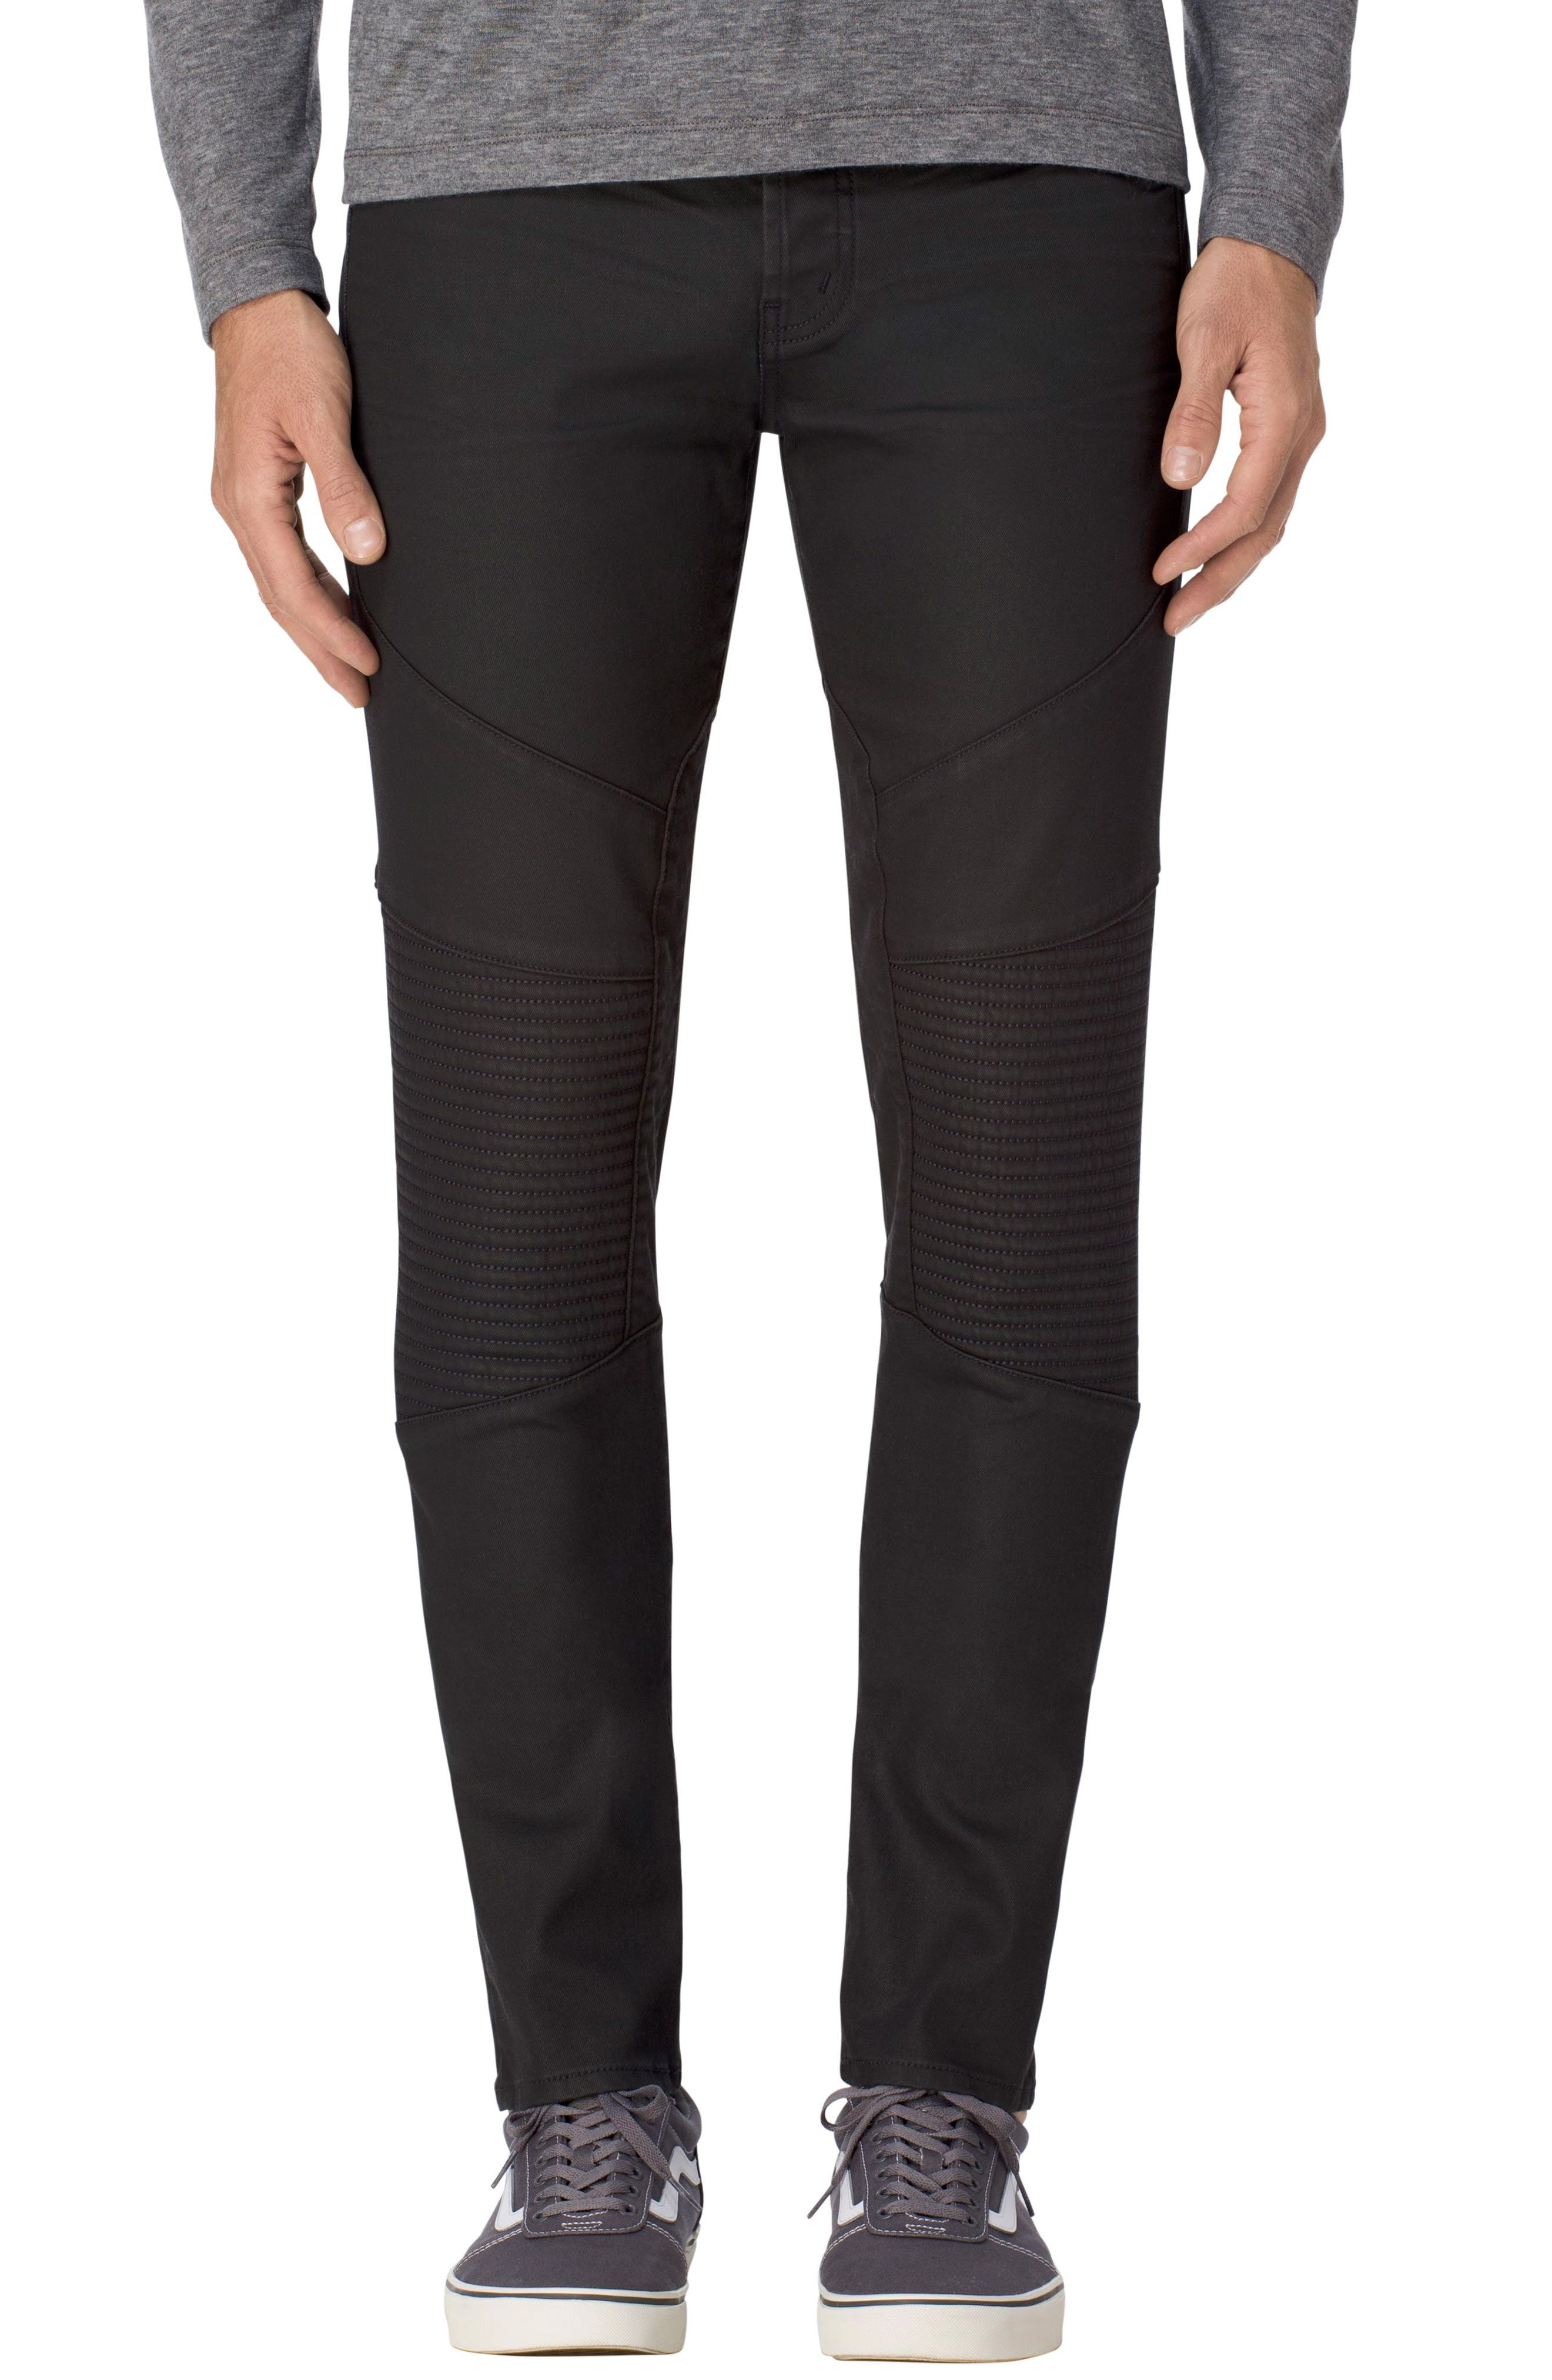 Bearden Moto Skinny Fit Jeans,                         Main,                         color, Fact